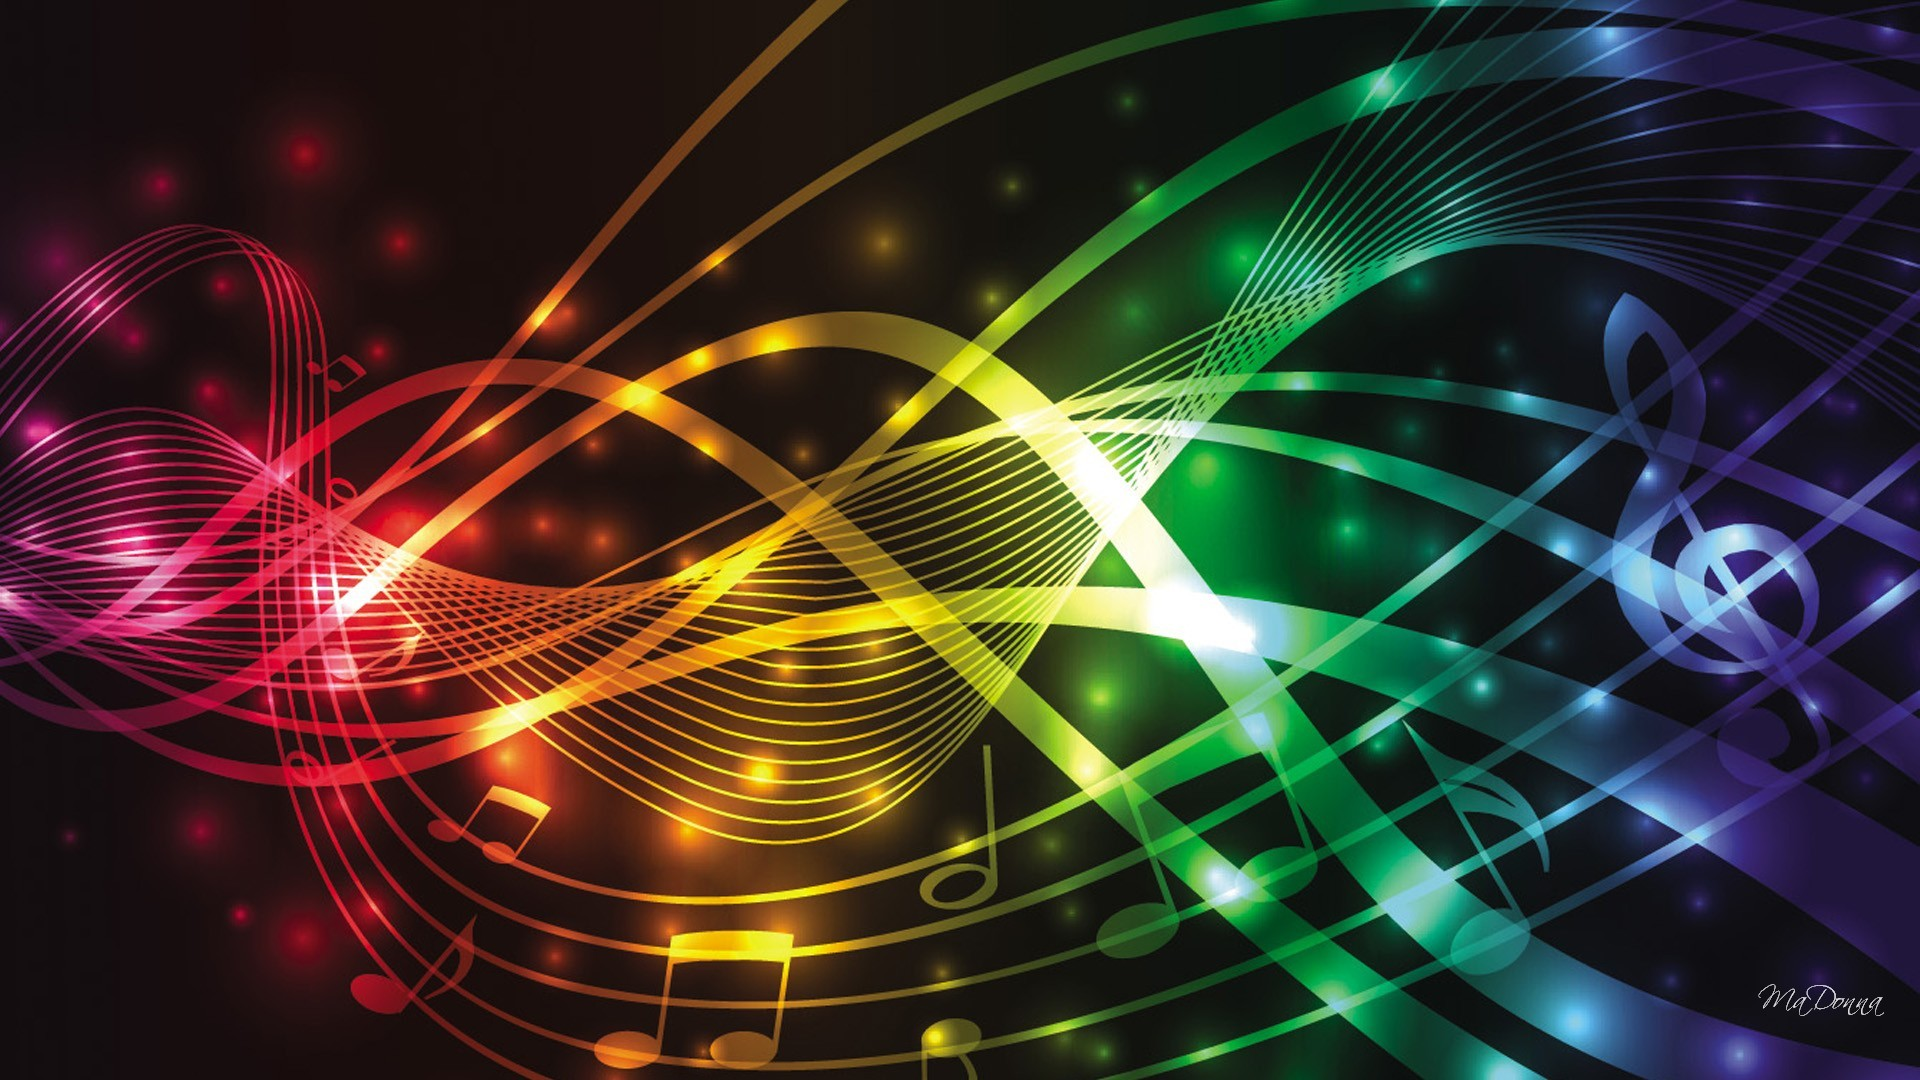 HD Colors Of Music Wallpaper – Full HD or background image…